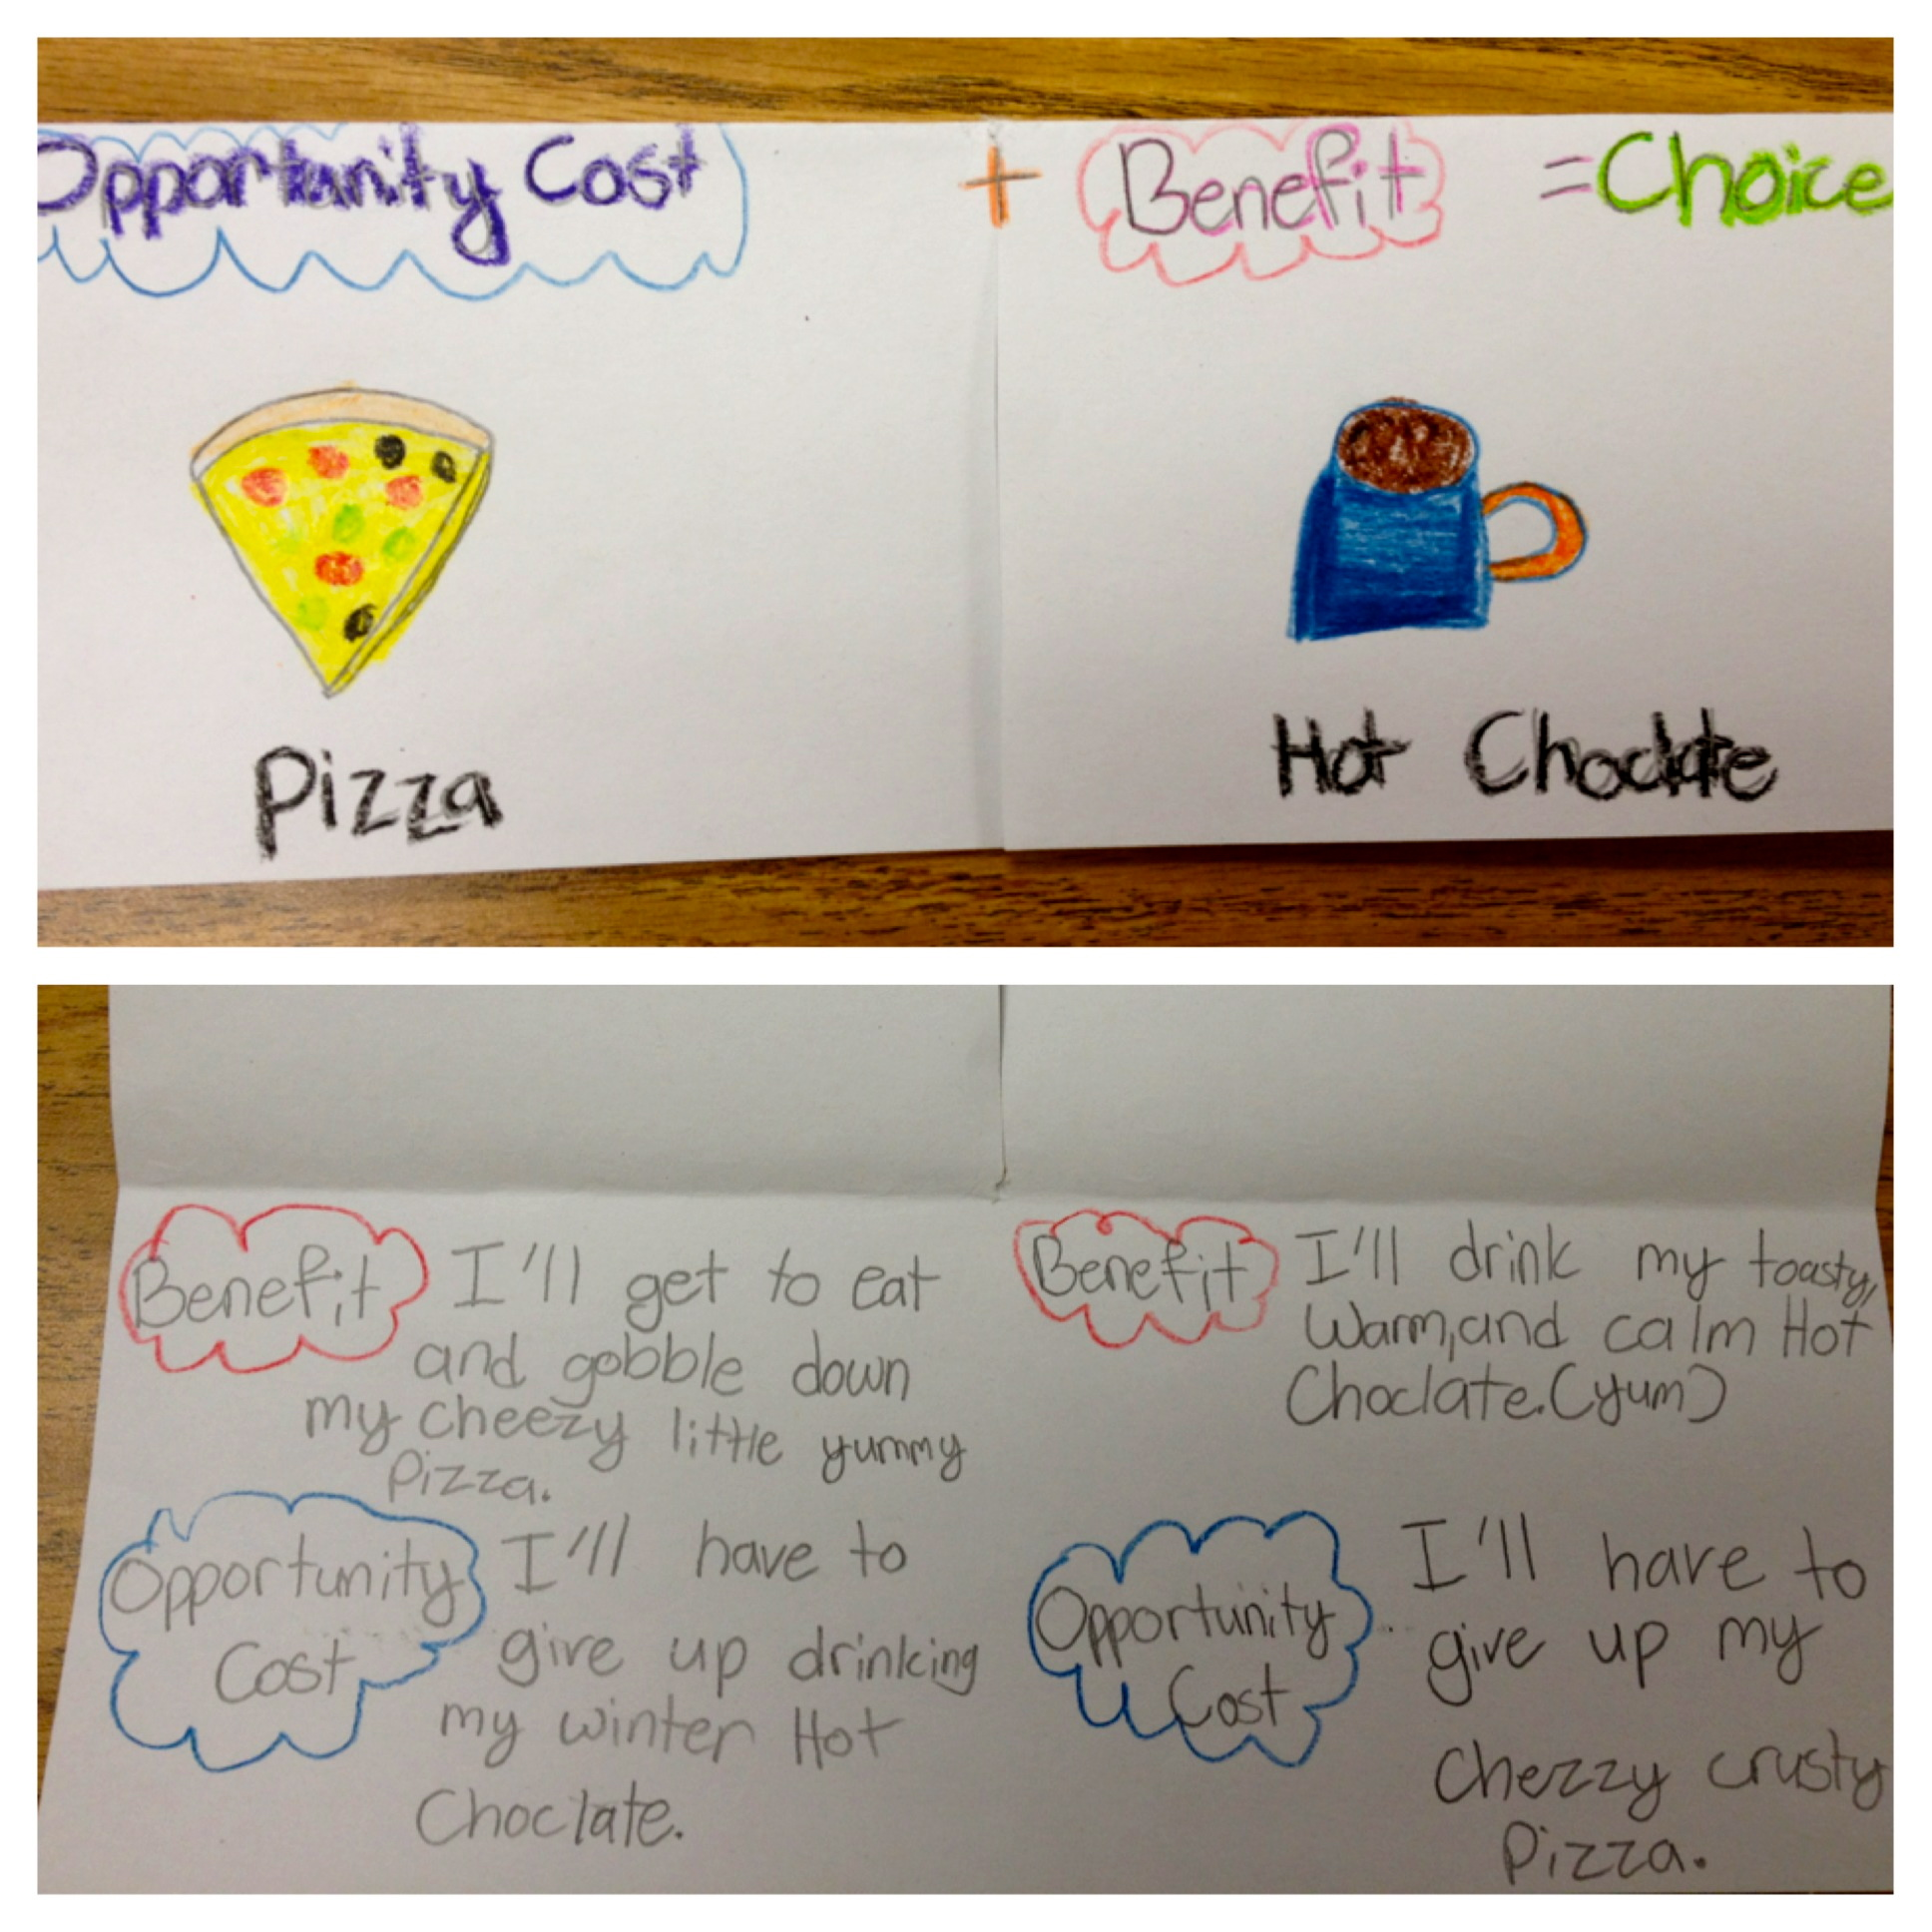 Right clipart opportunity cost I If choose flip kids